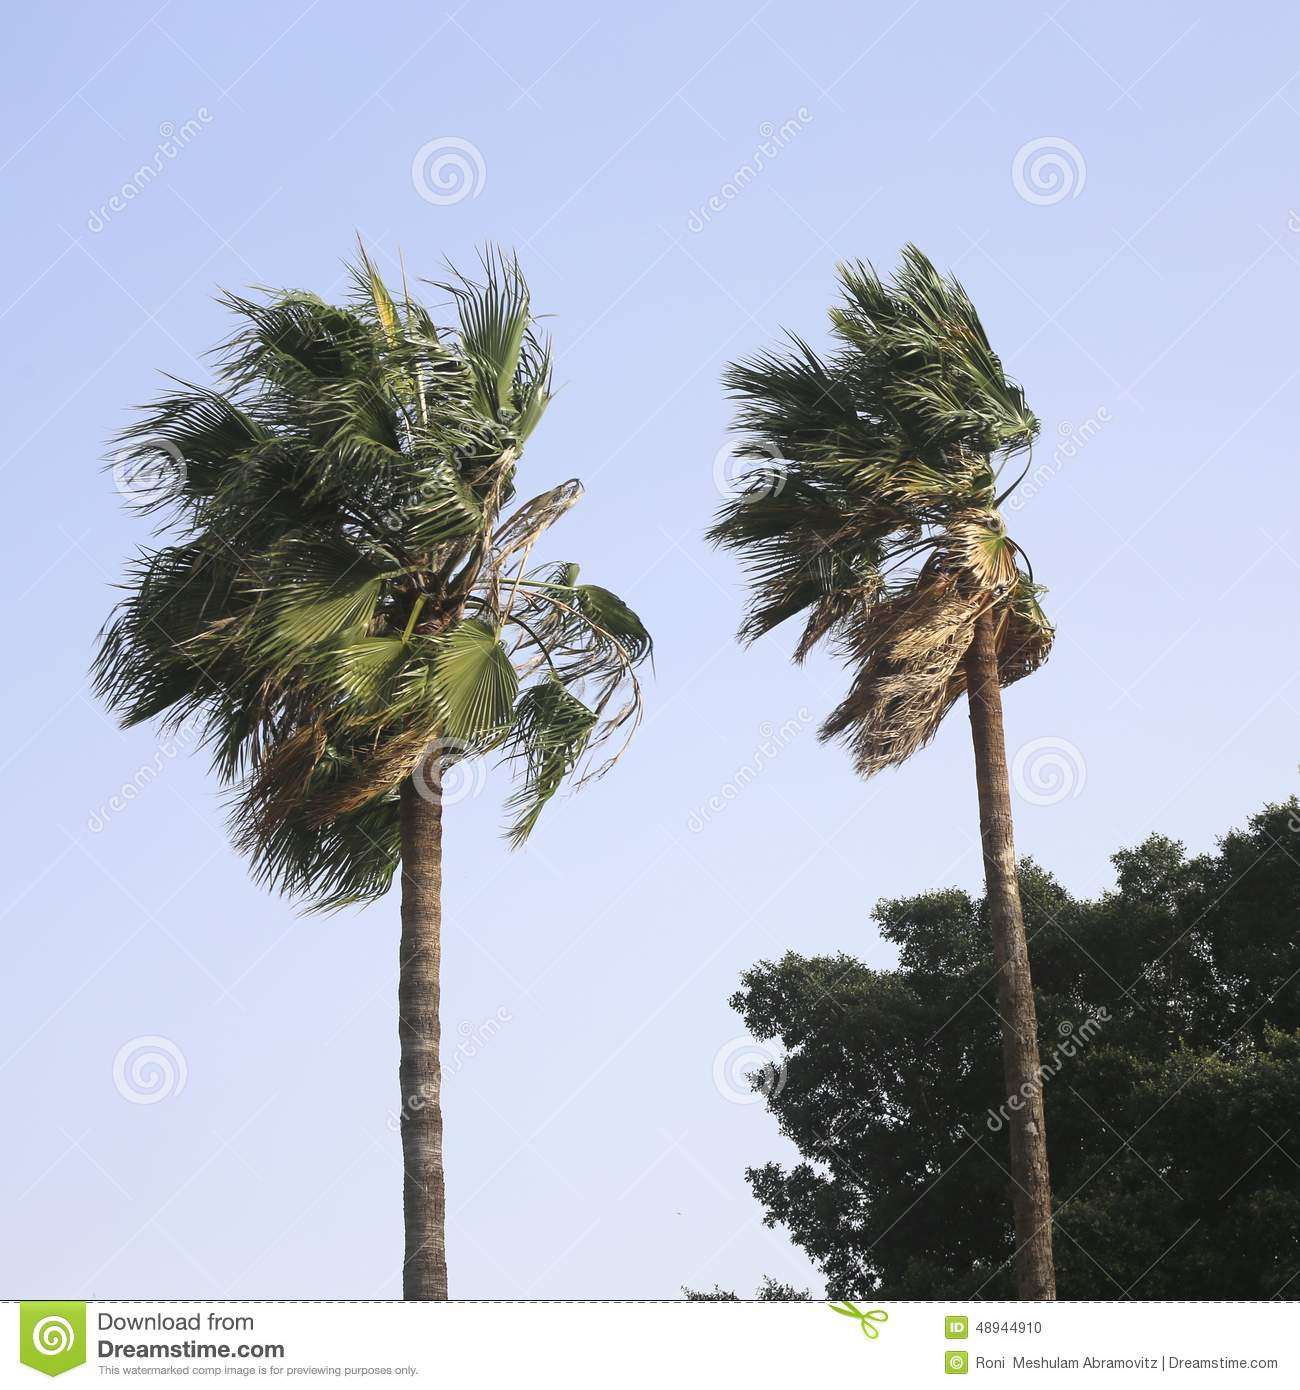 Blowing palm trees clipart.